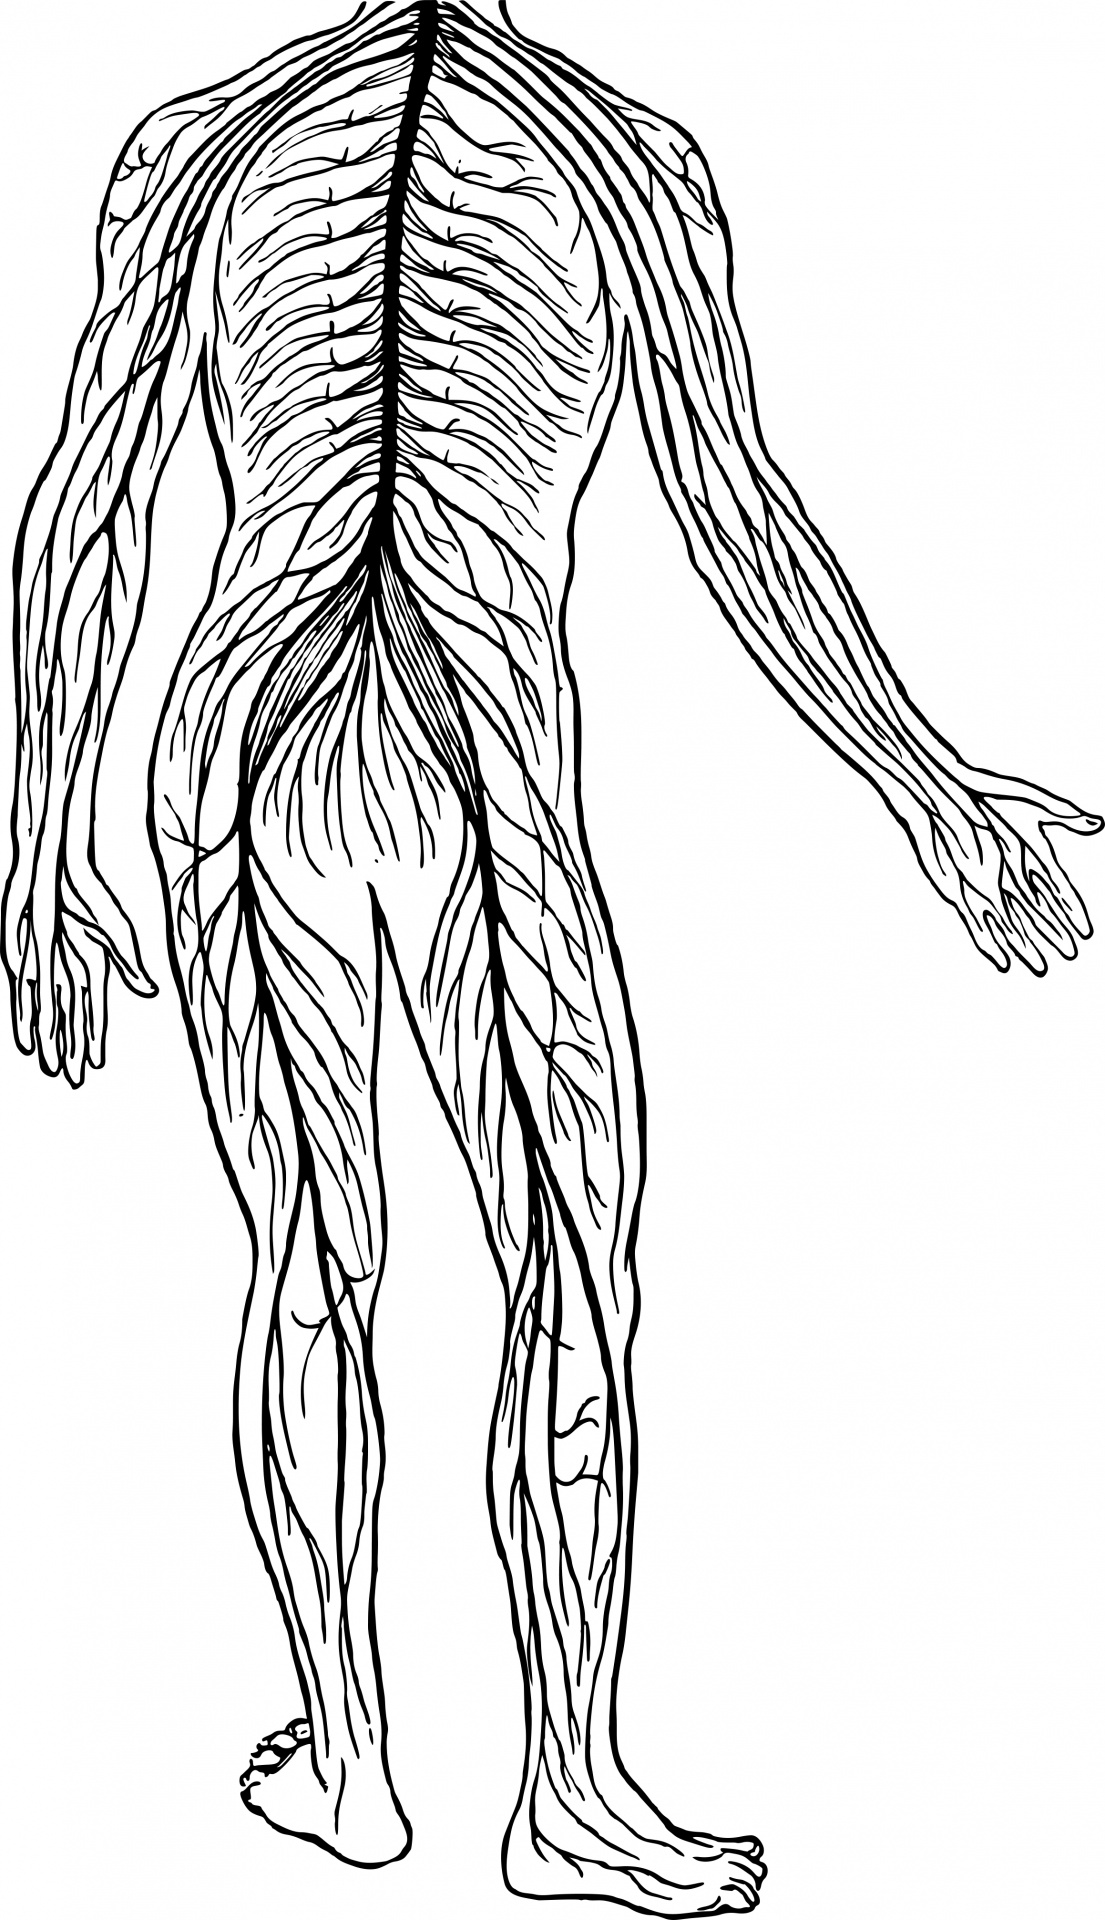 Meet Your Nervous System